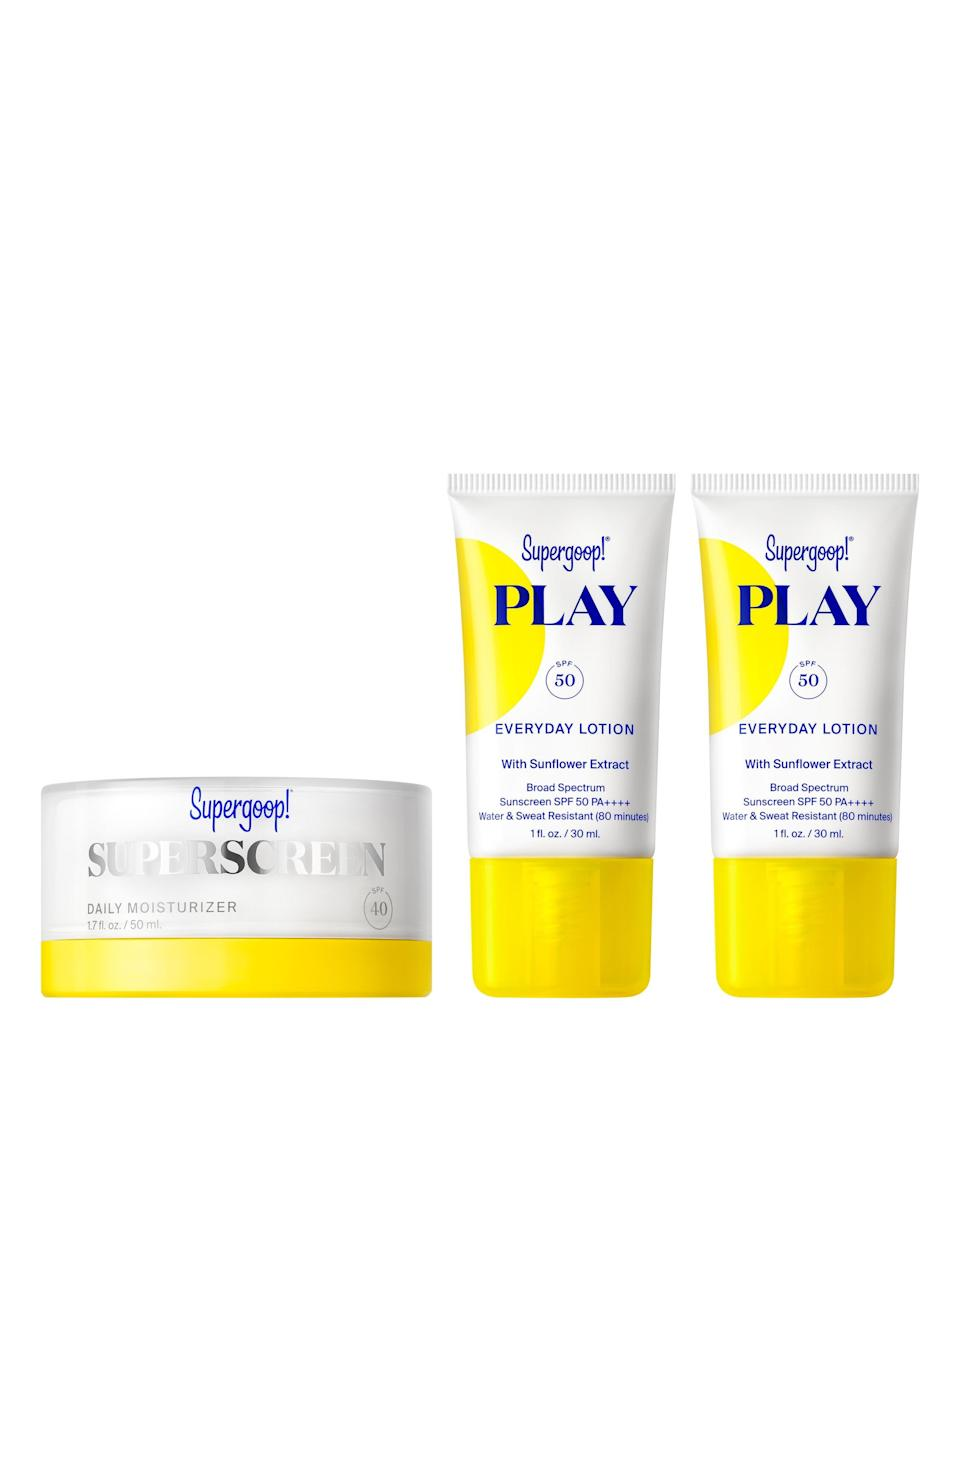 """<p><strong>Supergoop!</strong></p><p>nordstrom.com</p><p><strong>$39.00</strong></p><p><a href=""""https://go.redirectingat.com?id=74968X1596630&url=https%3A%2F%2Fwww.nordstrom.com%2Fs%2Fsupergoop-superscreen-daily-moisturizer-spf-40-sunscreen-set-58-value%2F5578332&sref=https%3A%2F%2Fwww.elle.com%2Fbeauty%2Fg36944650%2Fnorstrom-anniversary-beauty-sale-2021%2F"""" rel=""""nofollow noopener"""" target=""""_blank"""" data-ylk=""""slk:Shop Now"""" class=""""link rapid-noclick-resp"""">Shop Now</a></p><p>For the summer, do your future self a favor by investing in a ton of SPF. You might not like it now, but you'll definitely see the fun side when your friends look 60 when you still look 25.</p>"""